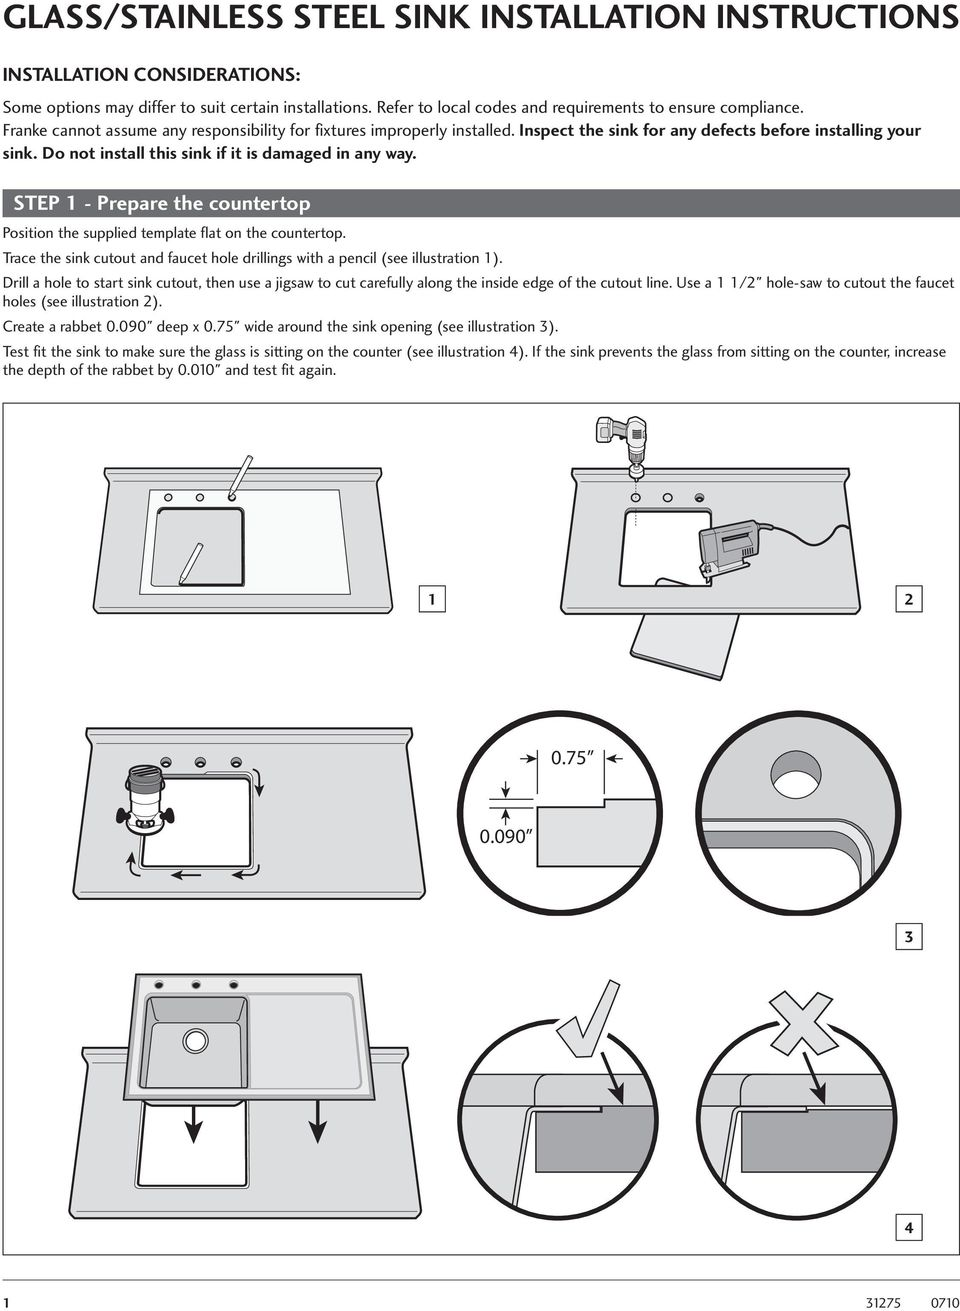 STEP 1 - Prepare the countertop Position the supplied template flat on the countertop. Trace the sink cutout and faucet hole drillings with a pencil (see illustration 1).